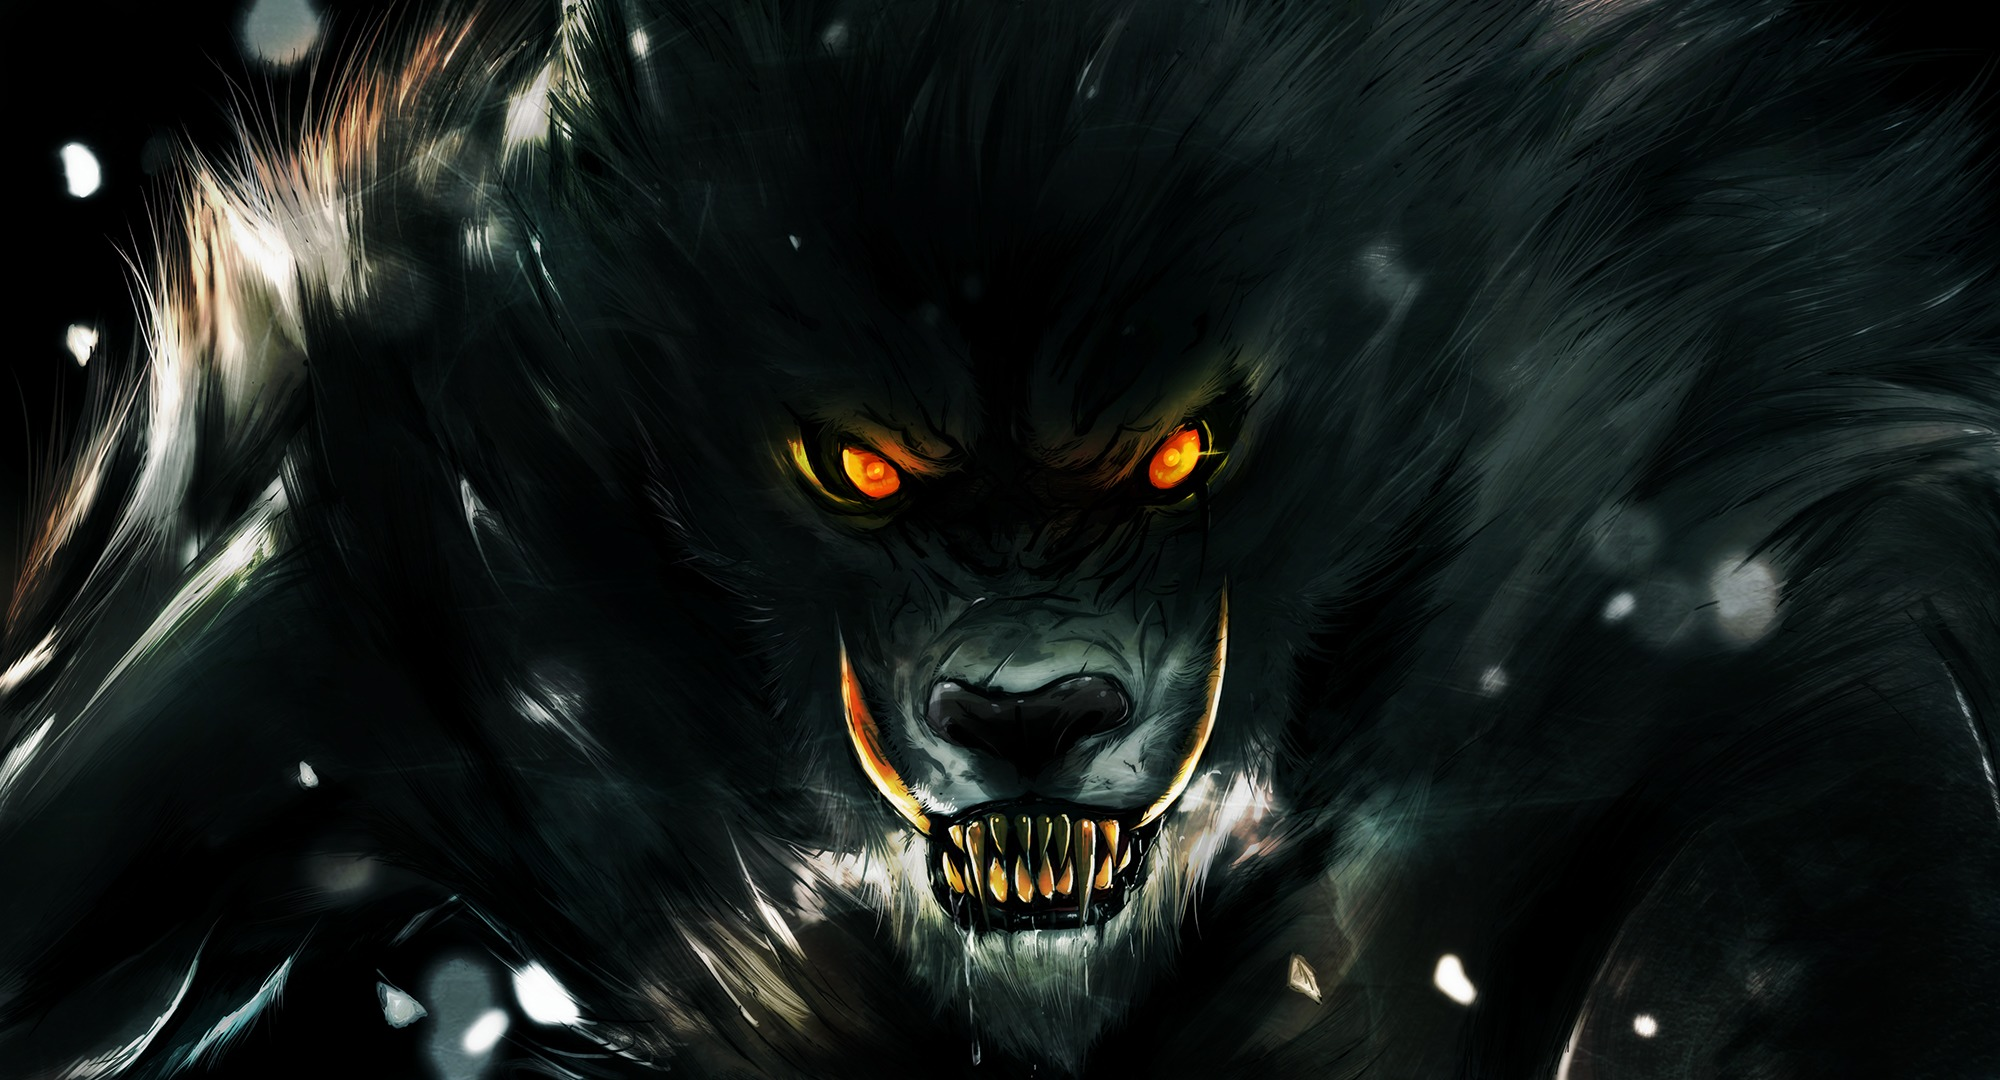 Wallpaper werewolf rage teeth chipped teeth wolf look eyes 2000x1080